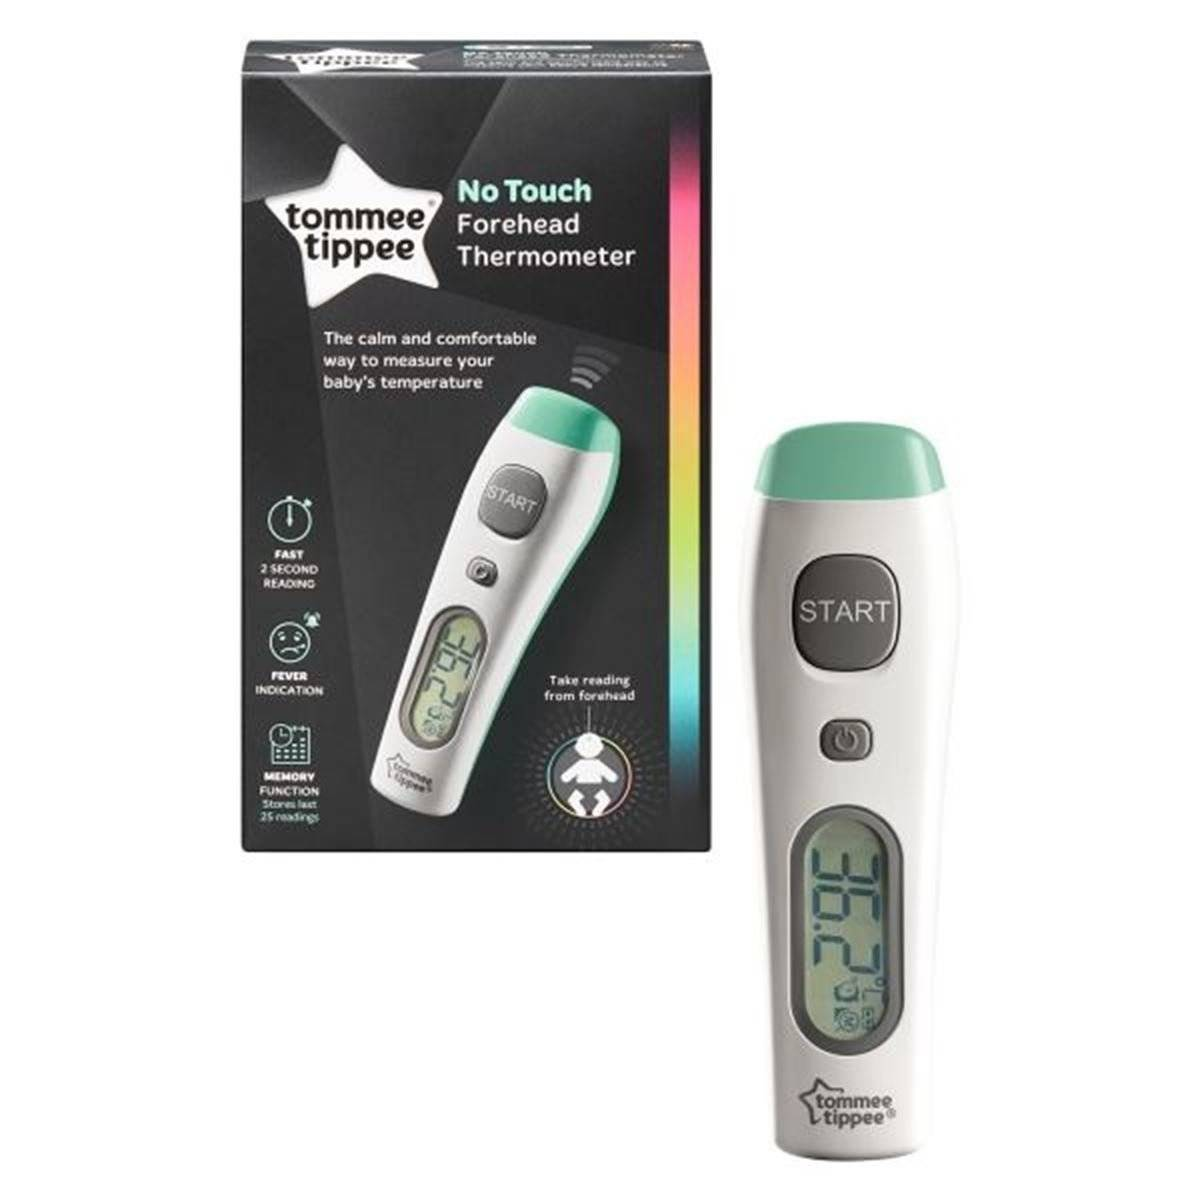 Tommee Tippee No Touch Termometer